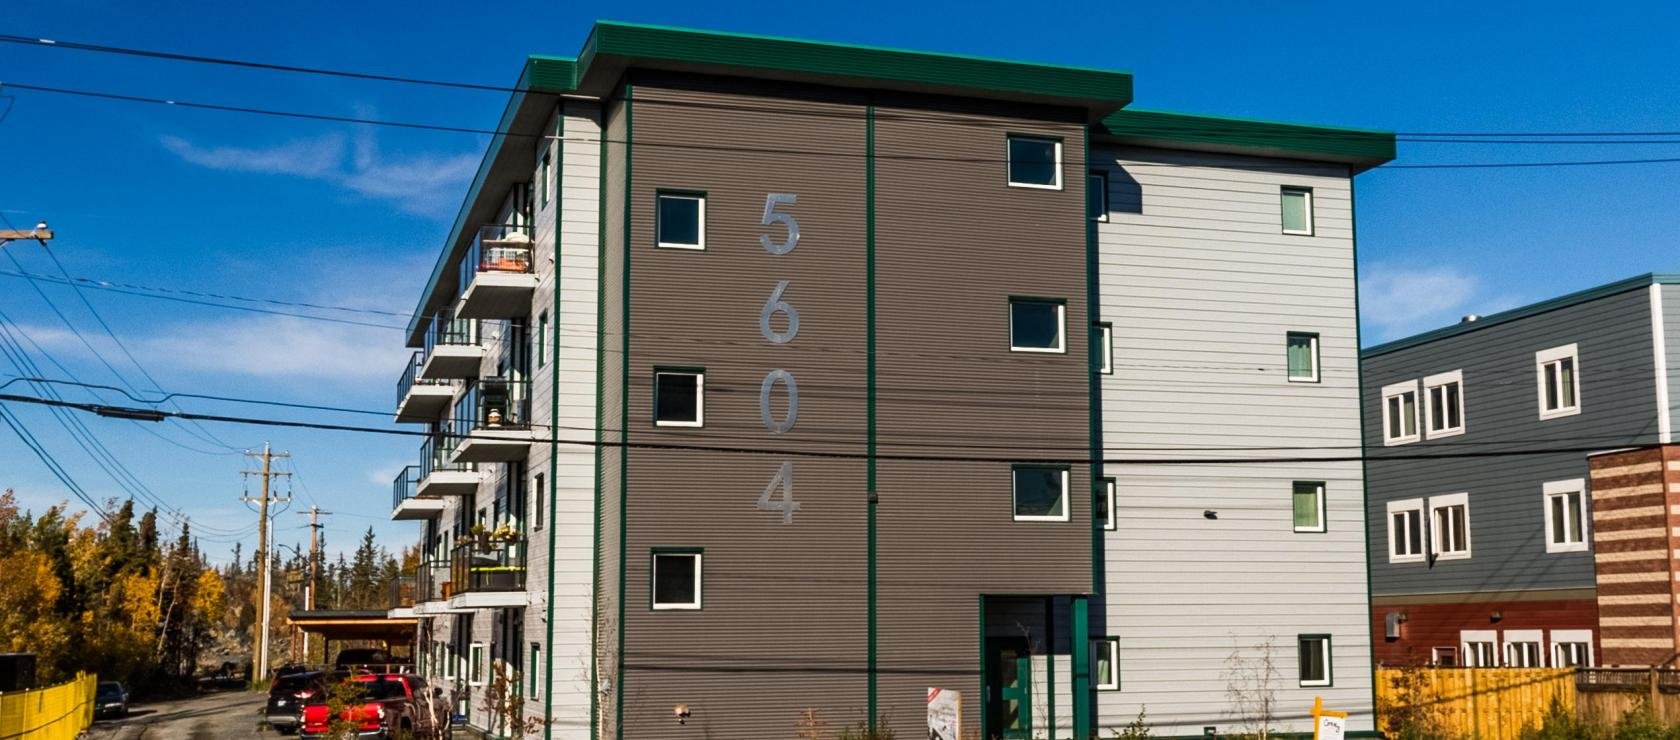 303 - 5604 50th Avenue, Downtown, Yellowknife 2